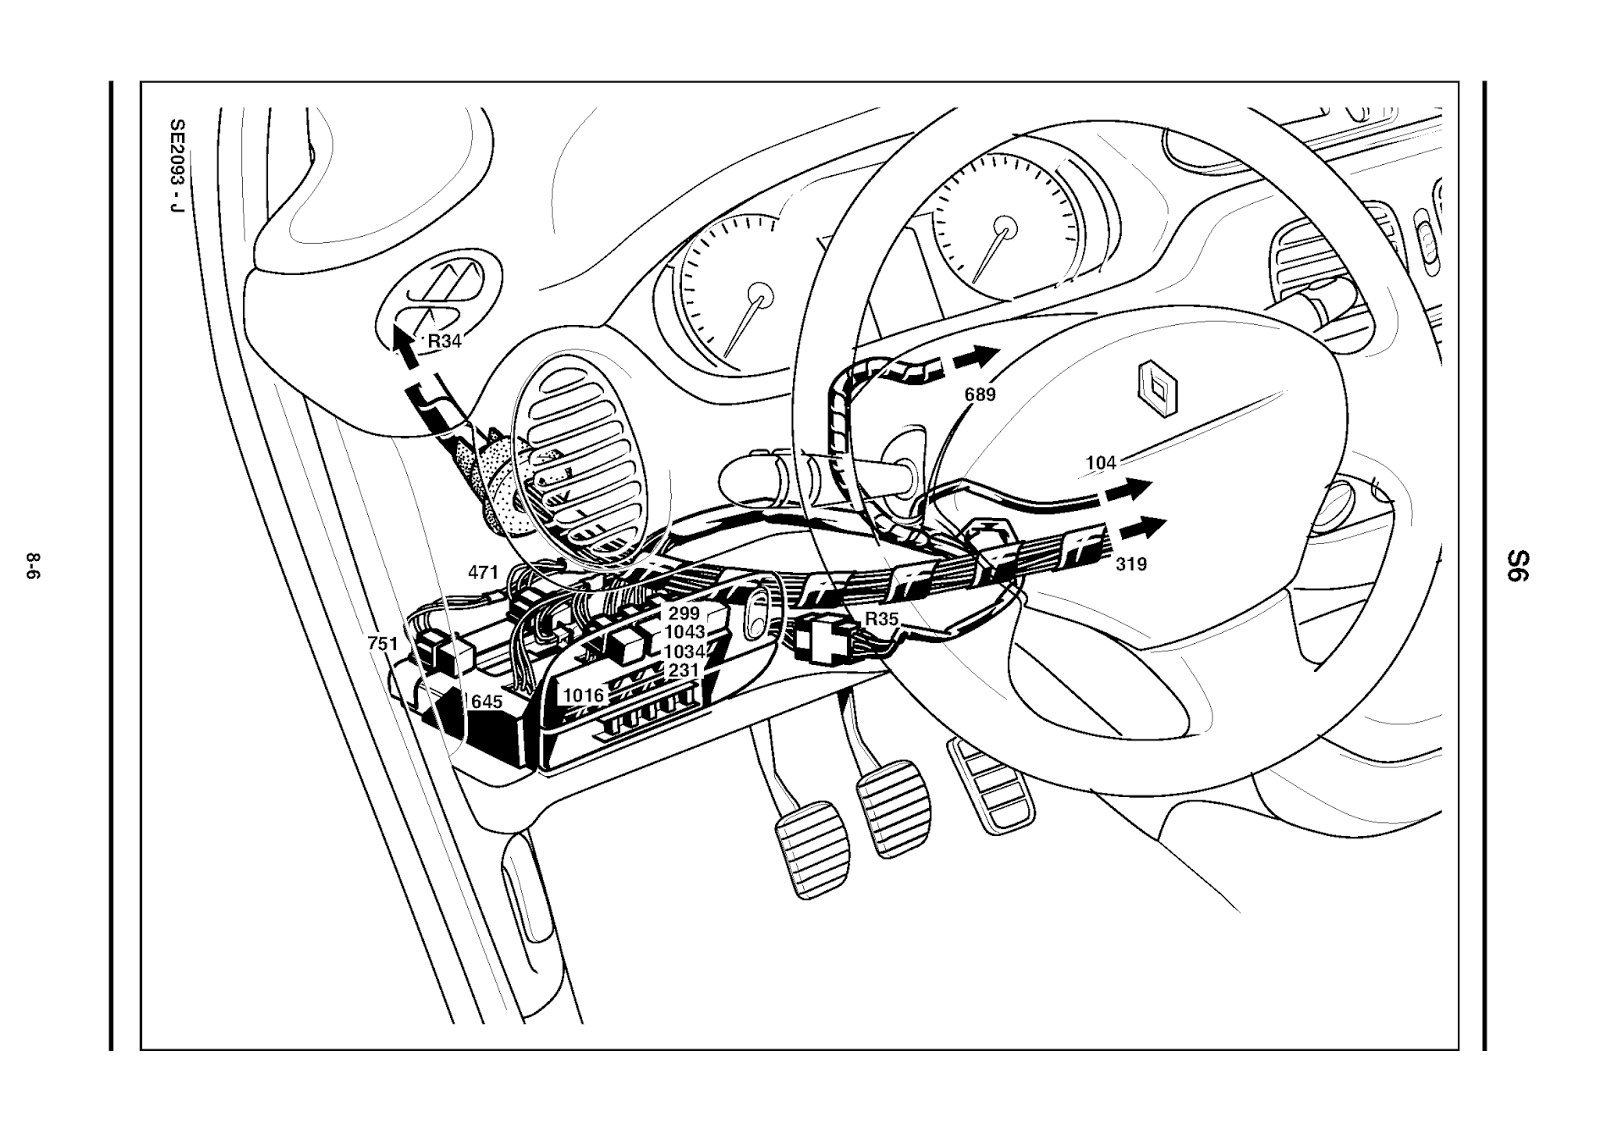 mercedes e320 wiring diagram with Kia Forte Fan Diagram on Delco 22si Alternator Wiring Diagram likewise Kia Forte Fan Diagram as well Srs Module Location in addition Mercedes Class C W204 Fuse Box furthermore Honda Cr V  pressor Location.